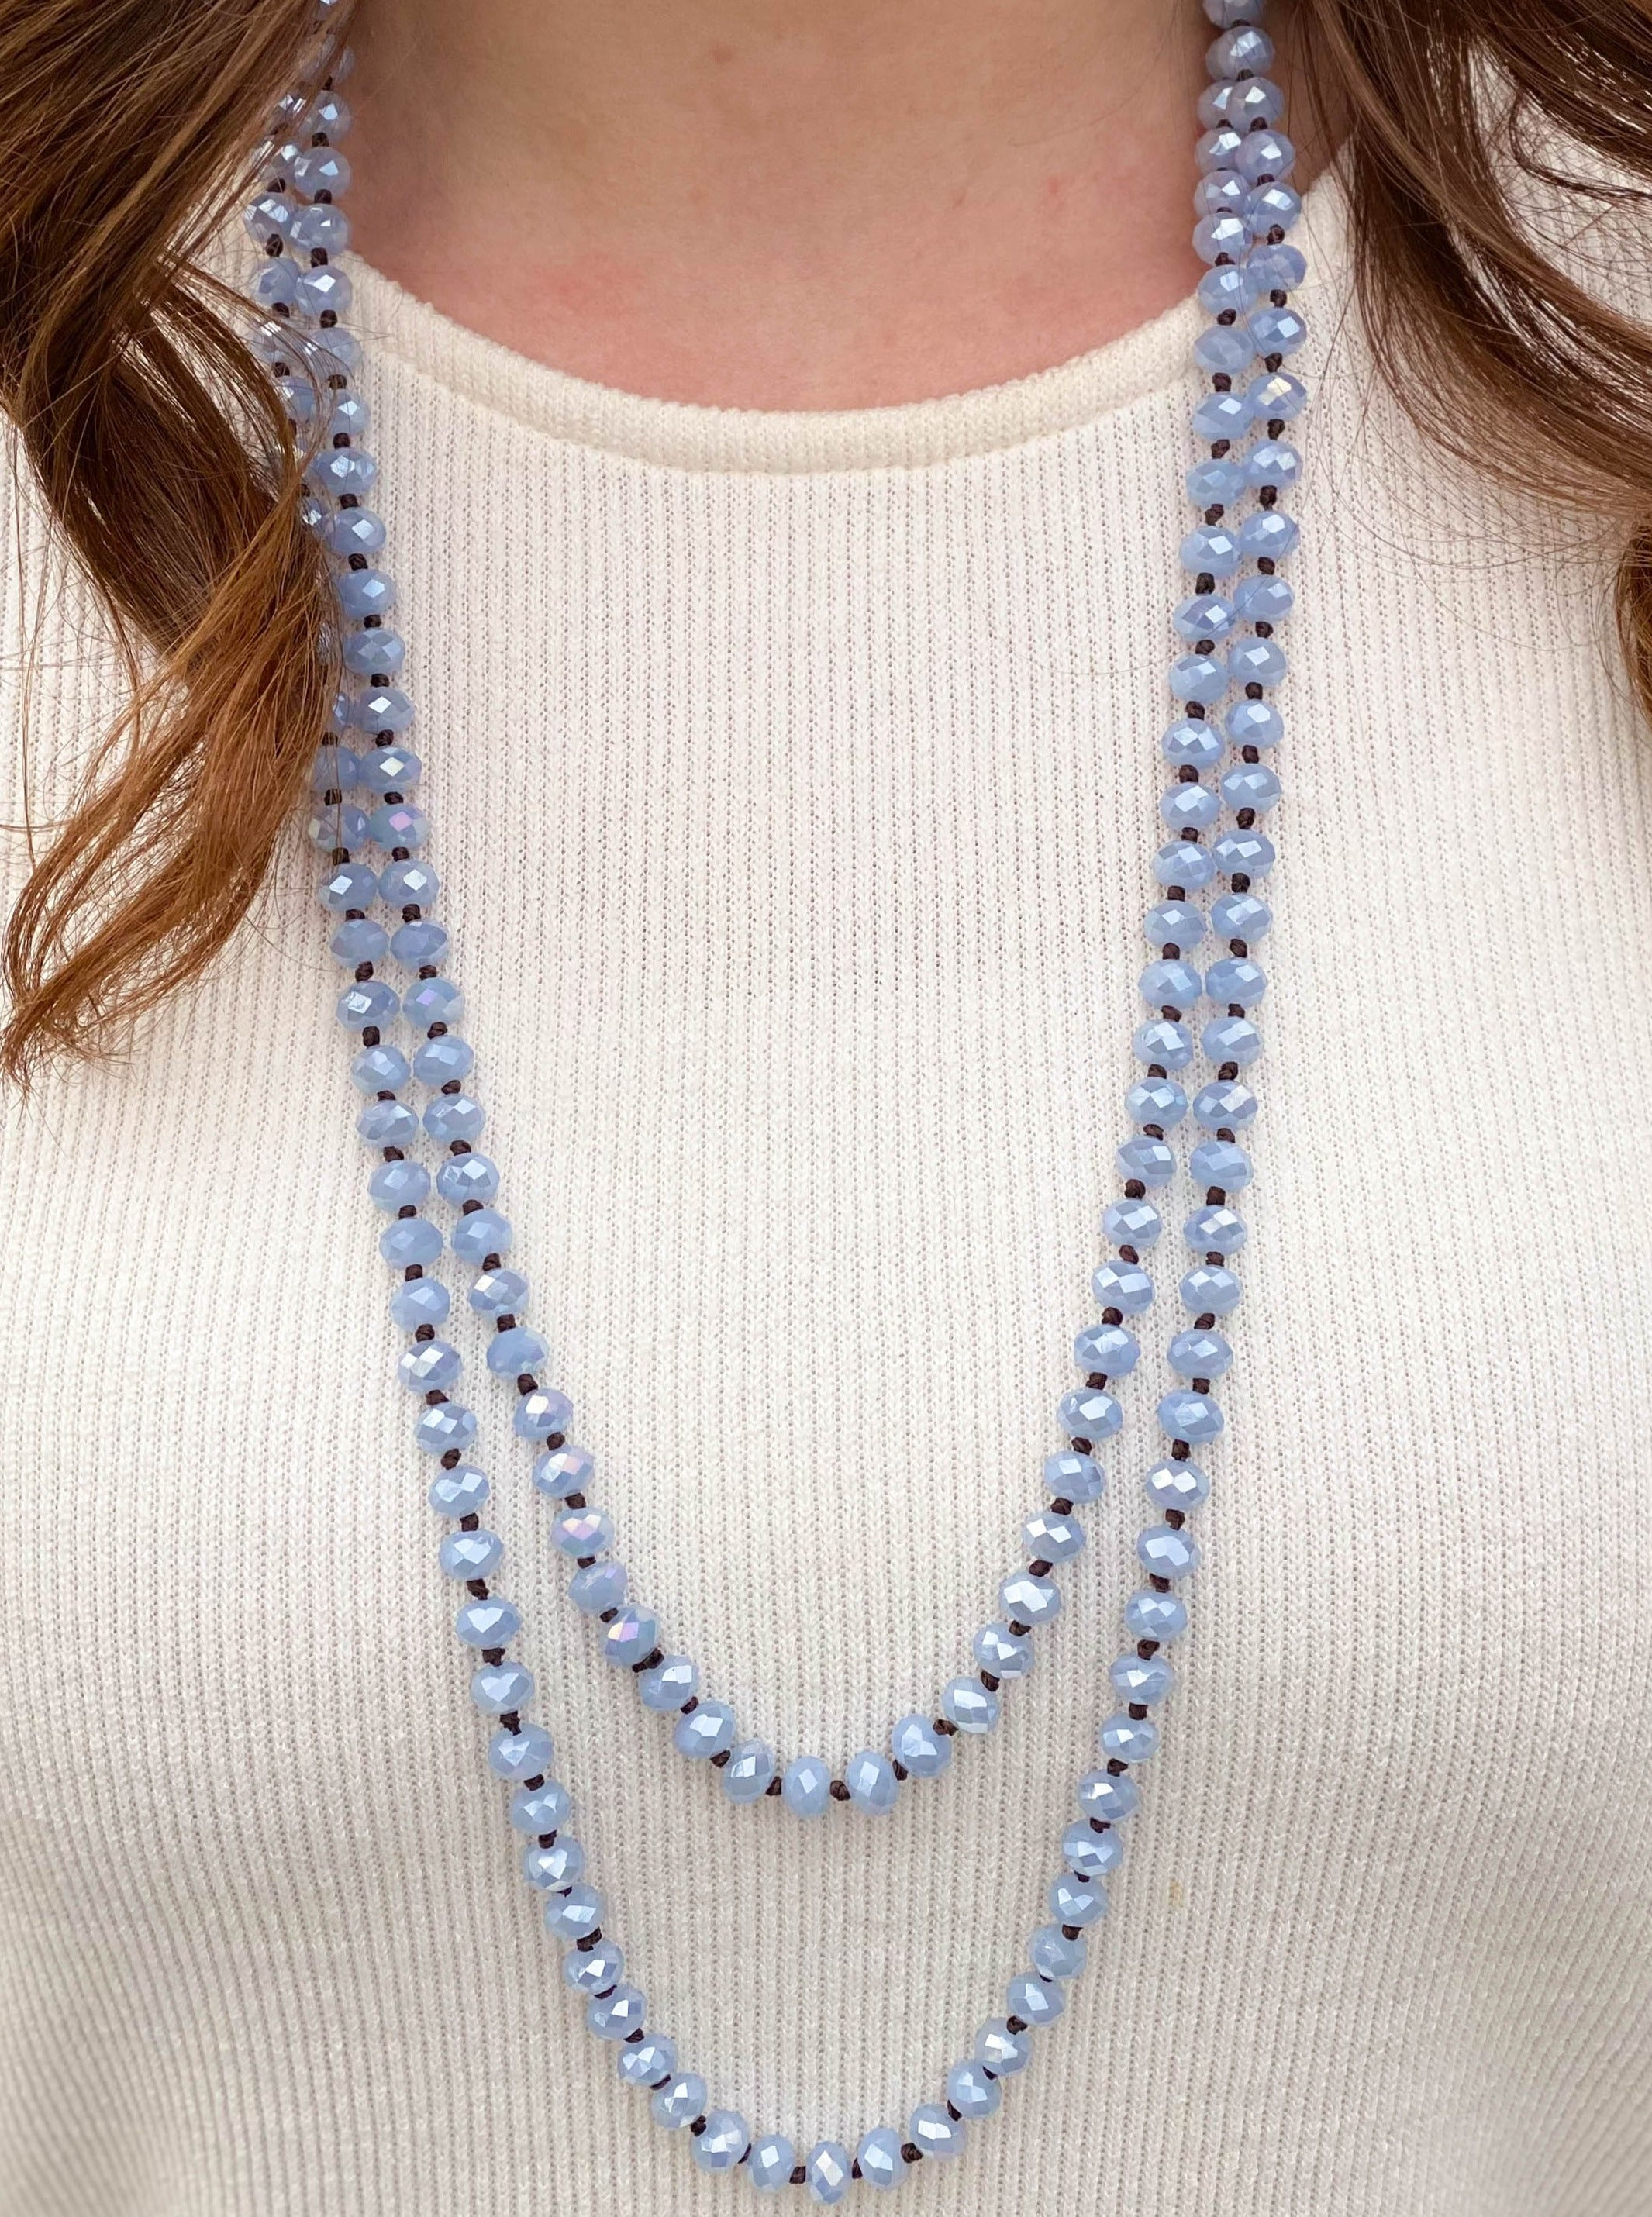 60 inch Dusty Blue Beaded Necklace